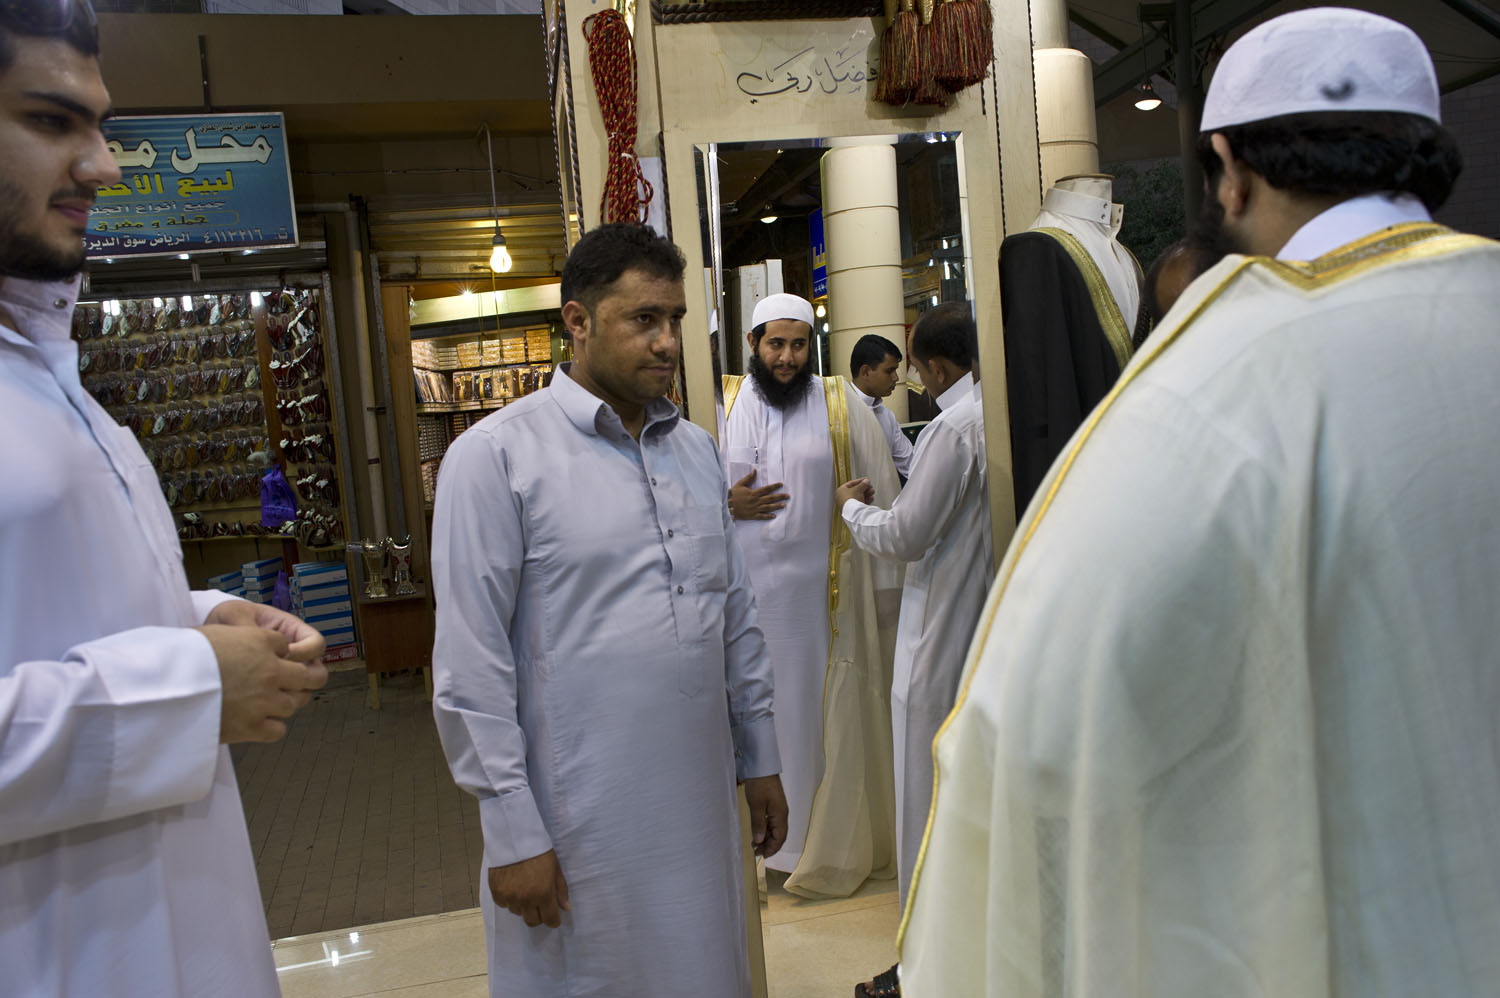 28-year-old IT consultant Ali el Saddou tries on a Bisht, a finely woven traditional robe (the Saudi equivalent of a tuxedo), which he will wear for his wedding in two weeks, as his brother, Mana, 21, far left, looks on, in Riyadh's old bazaar, in Riyadh, Saudi Arabia, June 10, 2011. Ali al Saddou will marry his cousin in a traditional arranged marriage in the Kingdom's capital, a tradition that is very common in the Kingdom.